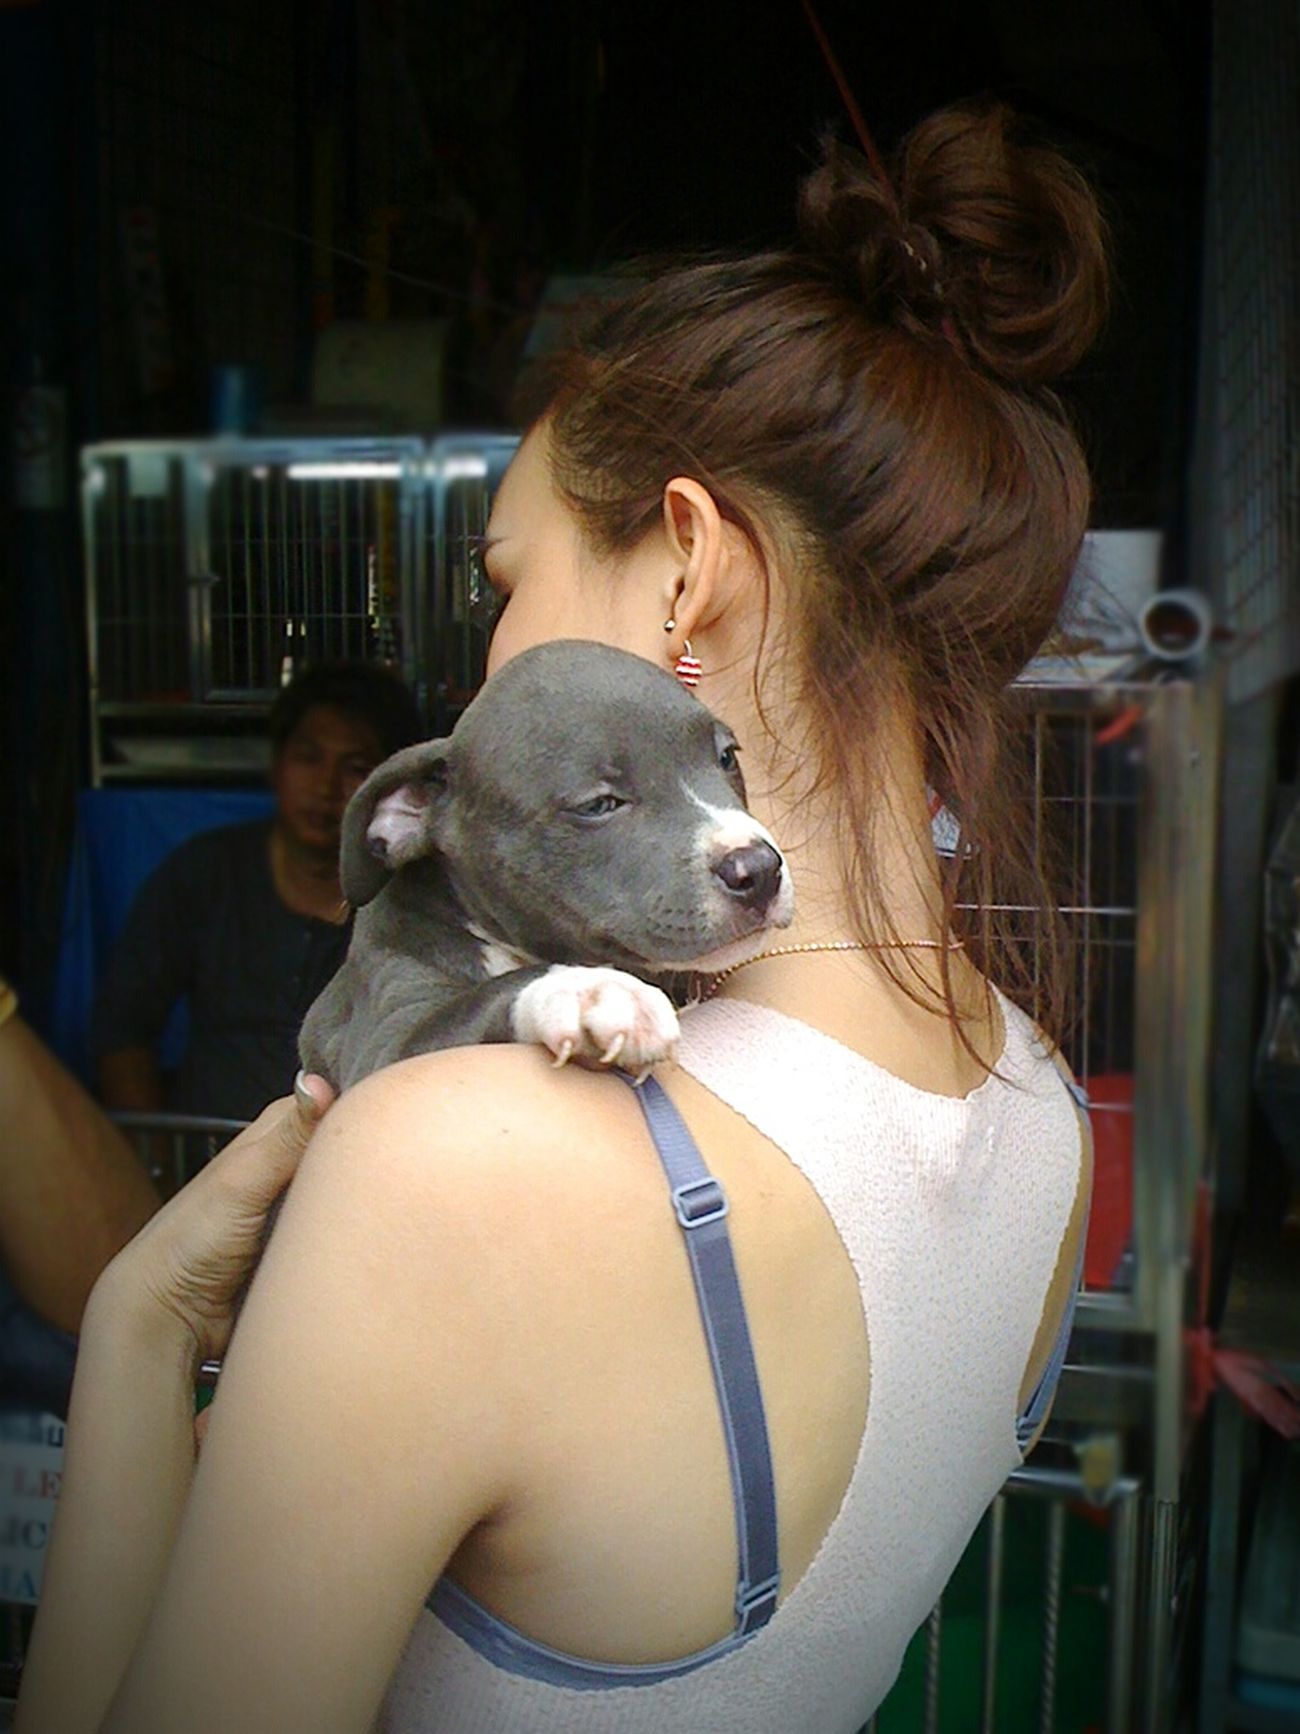 Cute Pets Cute Dog  Thailand Chatuchak Weekend Market Chatuchak Enjoying Life Pet Cutie Asleep Puppy Asleep Sleepy Puppy